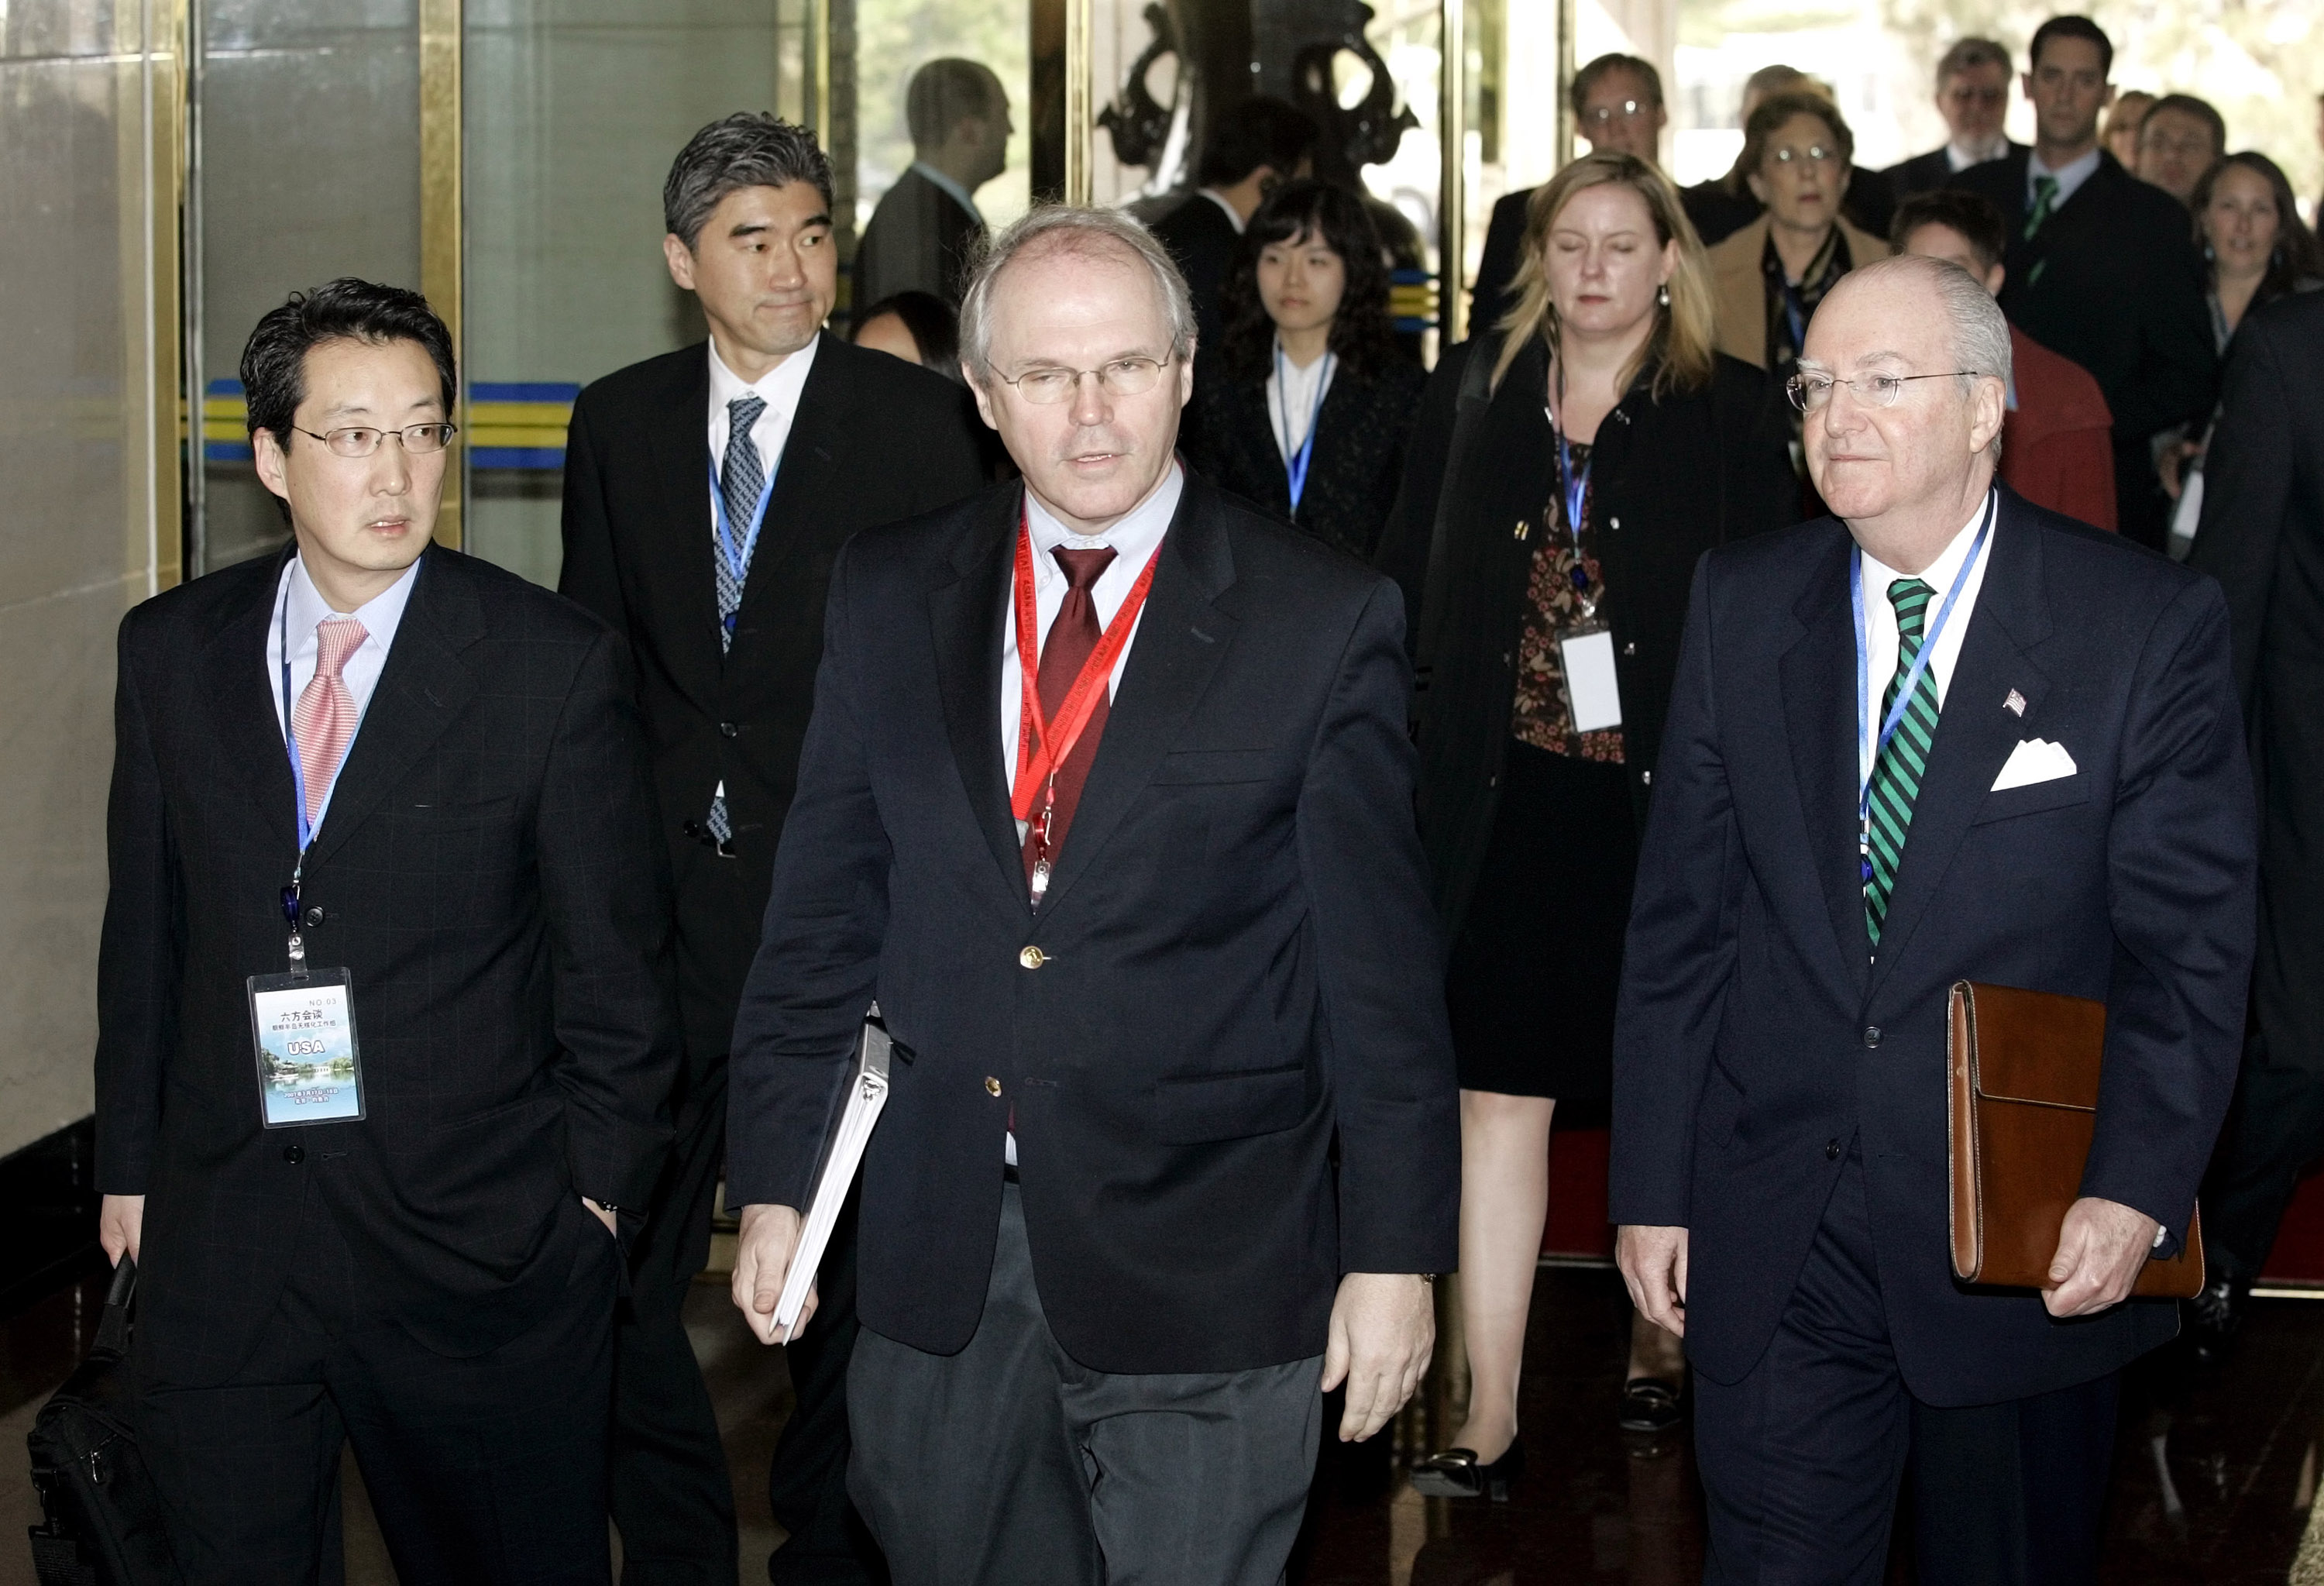 I n this March 17 2007 file photo, Victor Cha (L), then the U.S. National Security Council's director for Asian Affairs, arrives with U.S. Assistant Secretary of State Christopher Hill (C), and Ambassador to China Clark Randt (R), at the opening of denuclearization negotiations with North Korea in Beijing